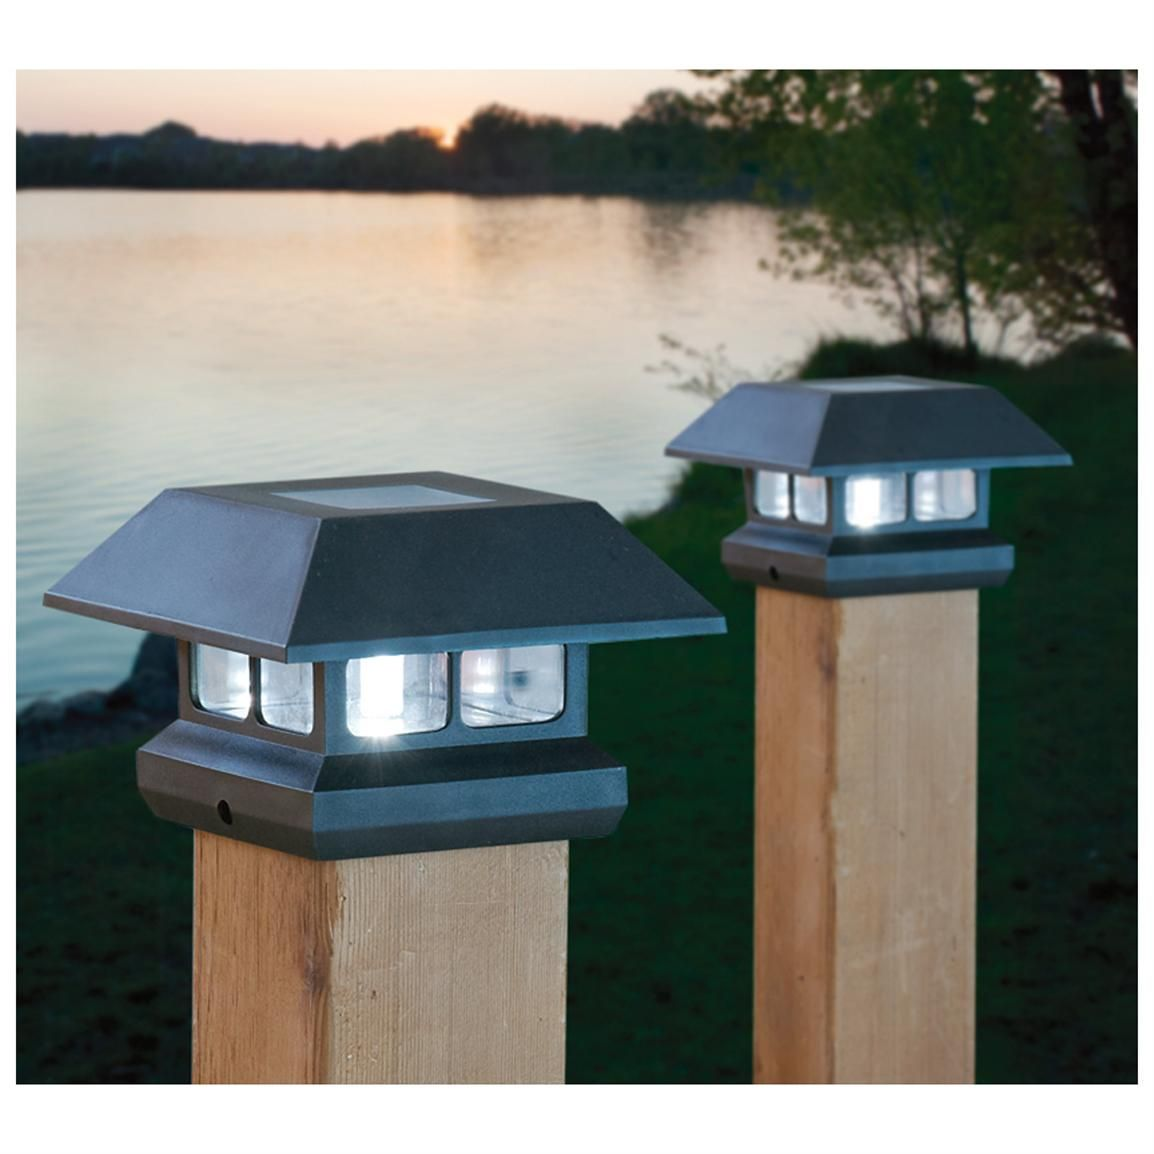 2 CASTLECREEK® Solar Post Lights. A bright idea for your